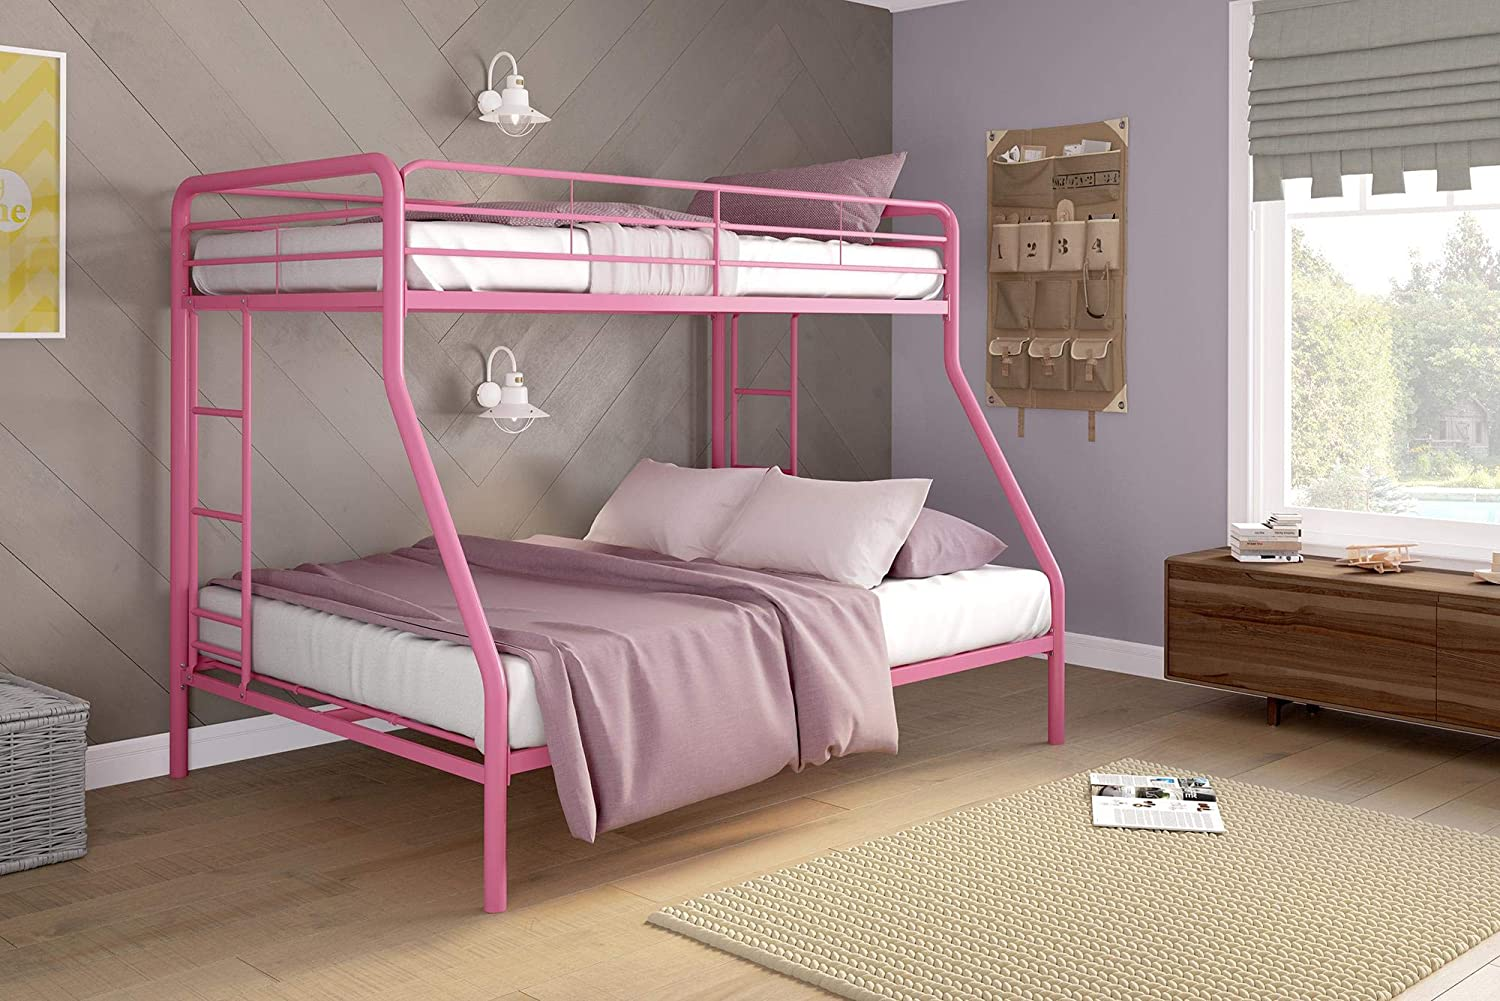 DHP Twin-Over-Full Bunk Bed with Metal Frame and Ladder, Space-Saving Design, Blue 5418196